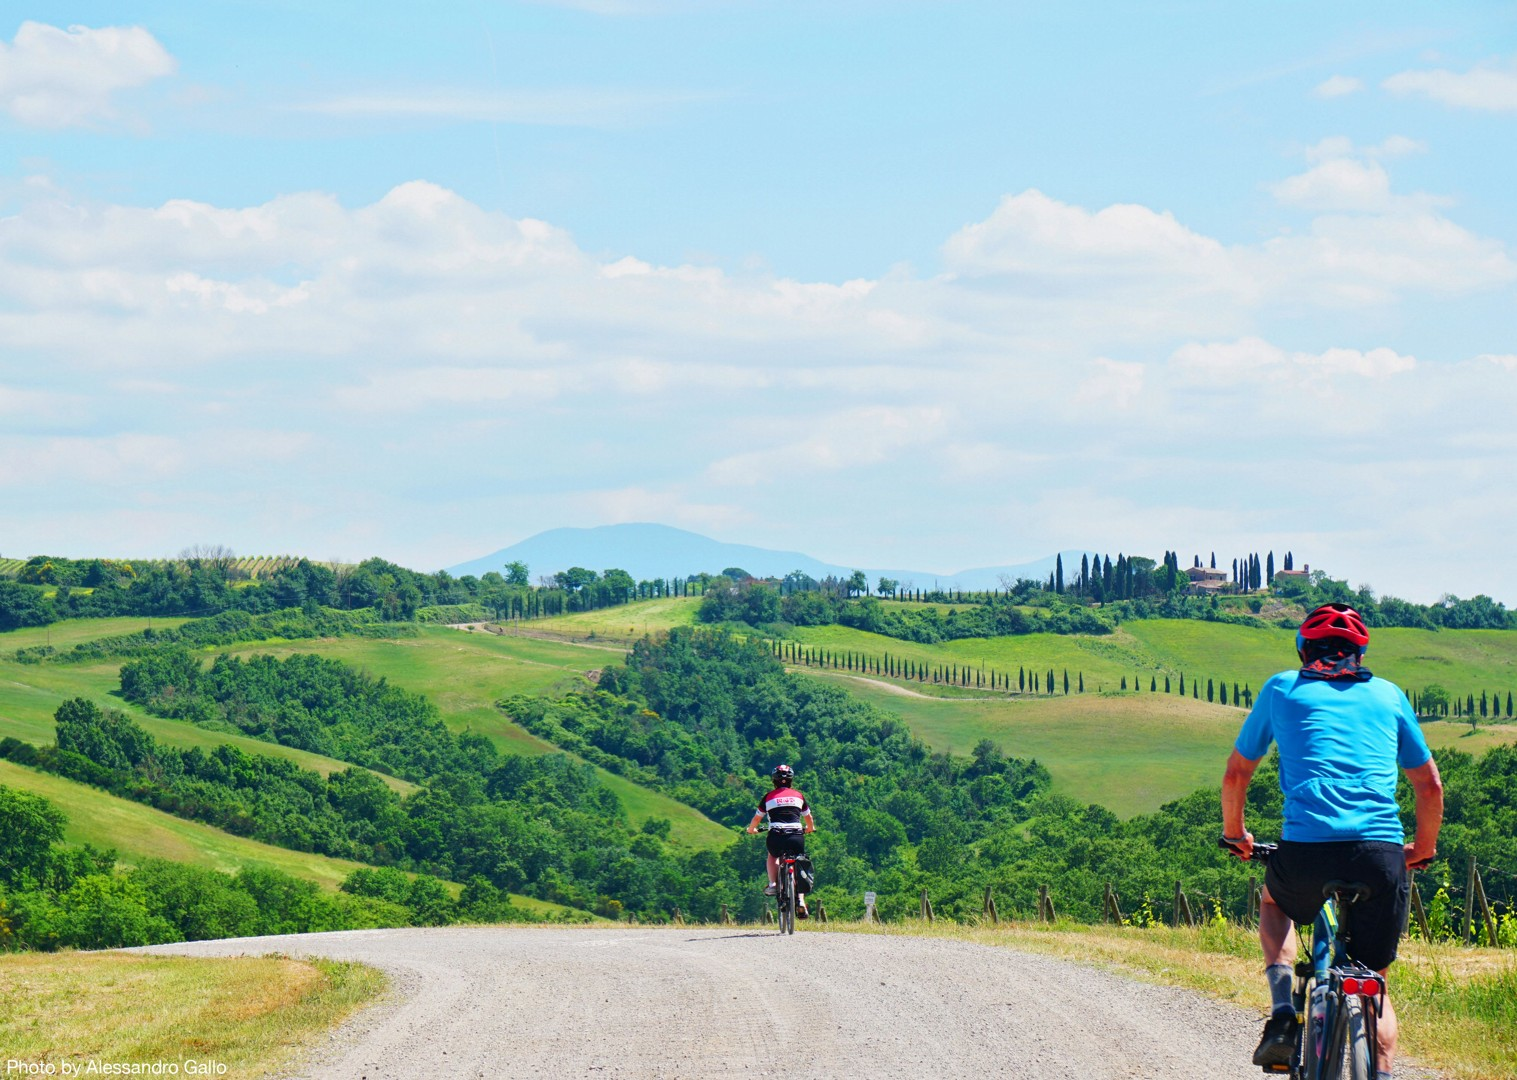 Italy-Via-Francigena-Tuscany-to-Rome-Guided-Leisure-Cycling-Holiday-leisure-cycling - Italy - Via Francigena (Tuscany to Rome) - Guided Leisure Cycling Holiday - Italia Leisure and Family Cycling